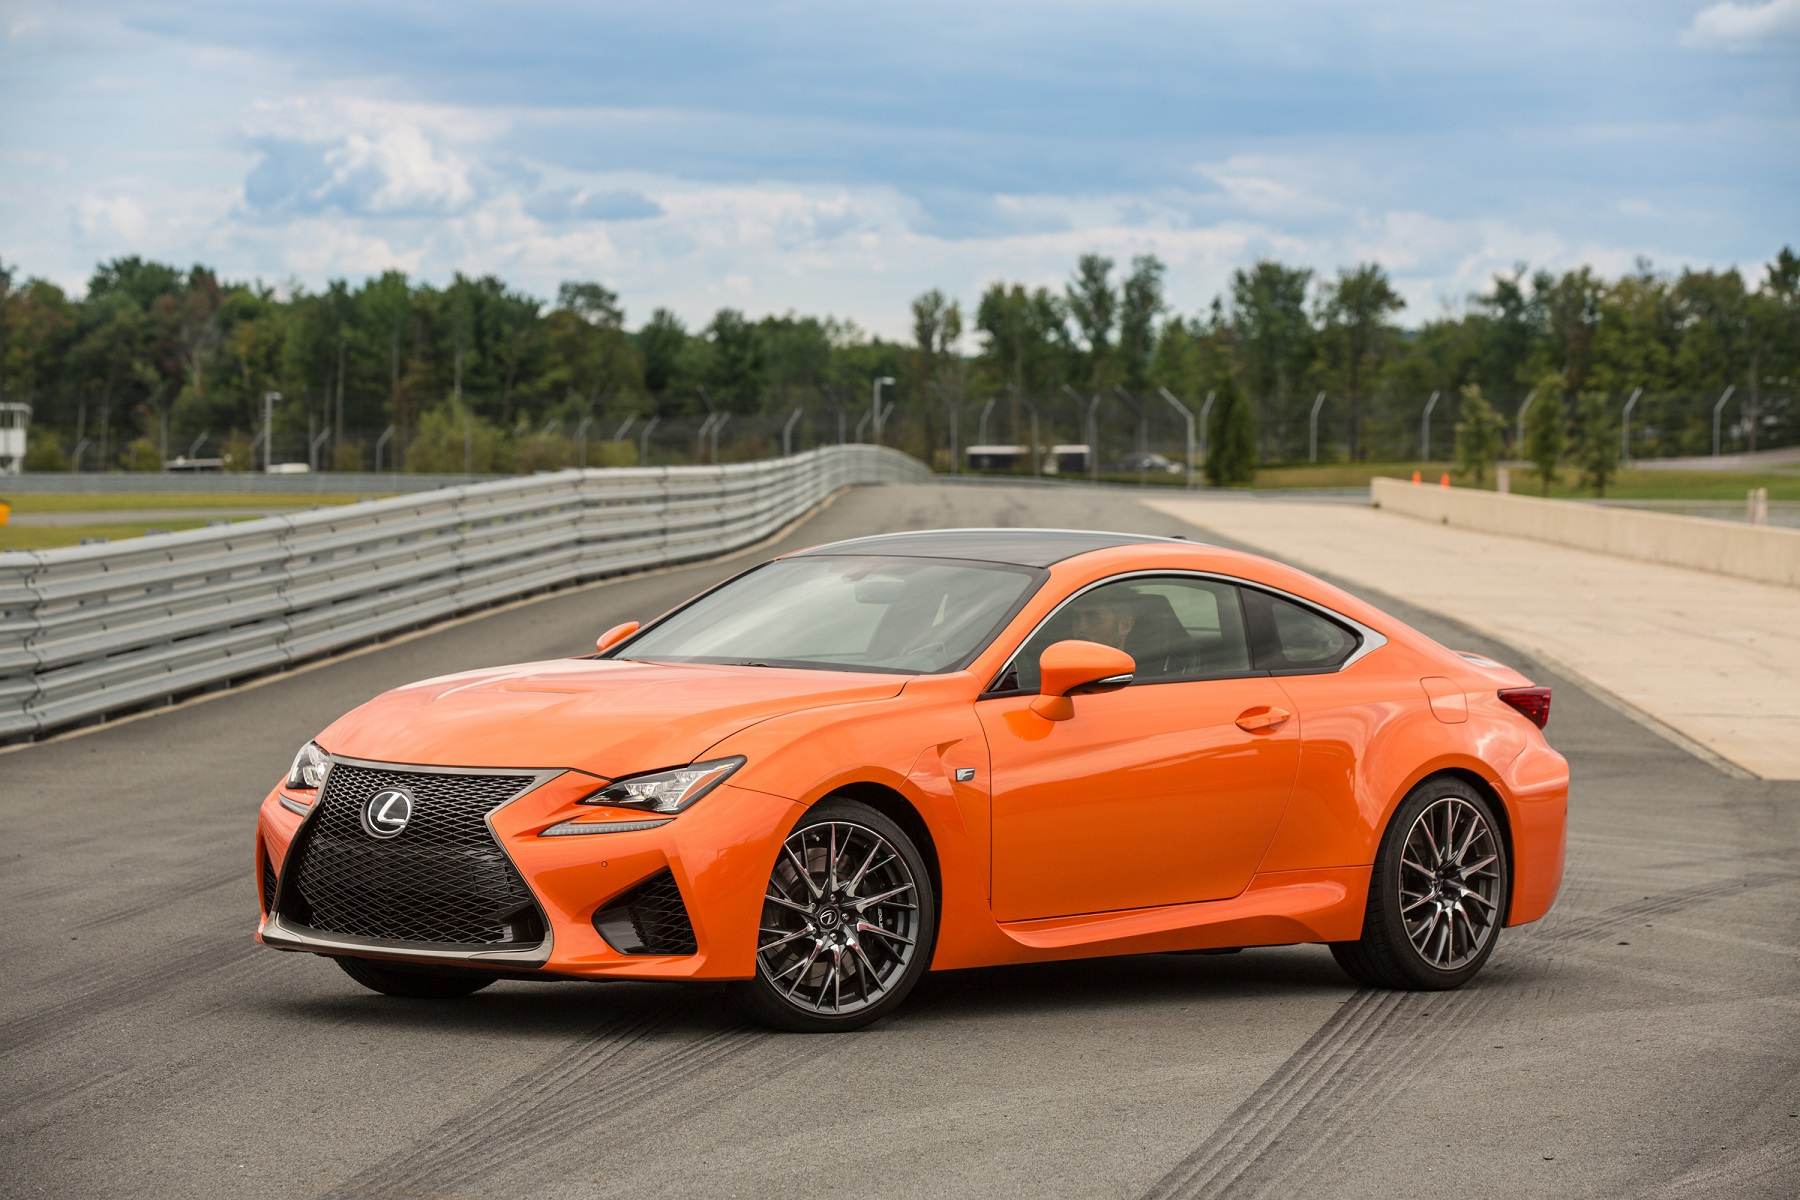 Manufacturer photo: The luxury-sport coupe category gets a lot hotter with the 2015 Lexus RC 350, melding audacious design and high performance like no Lexus before